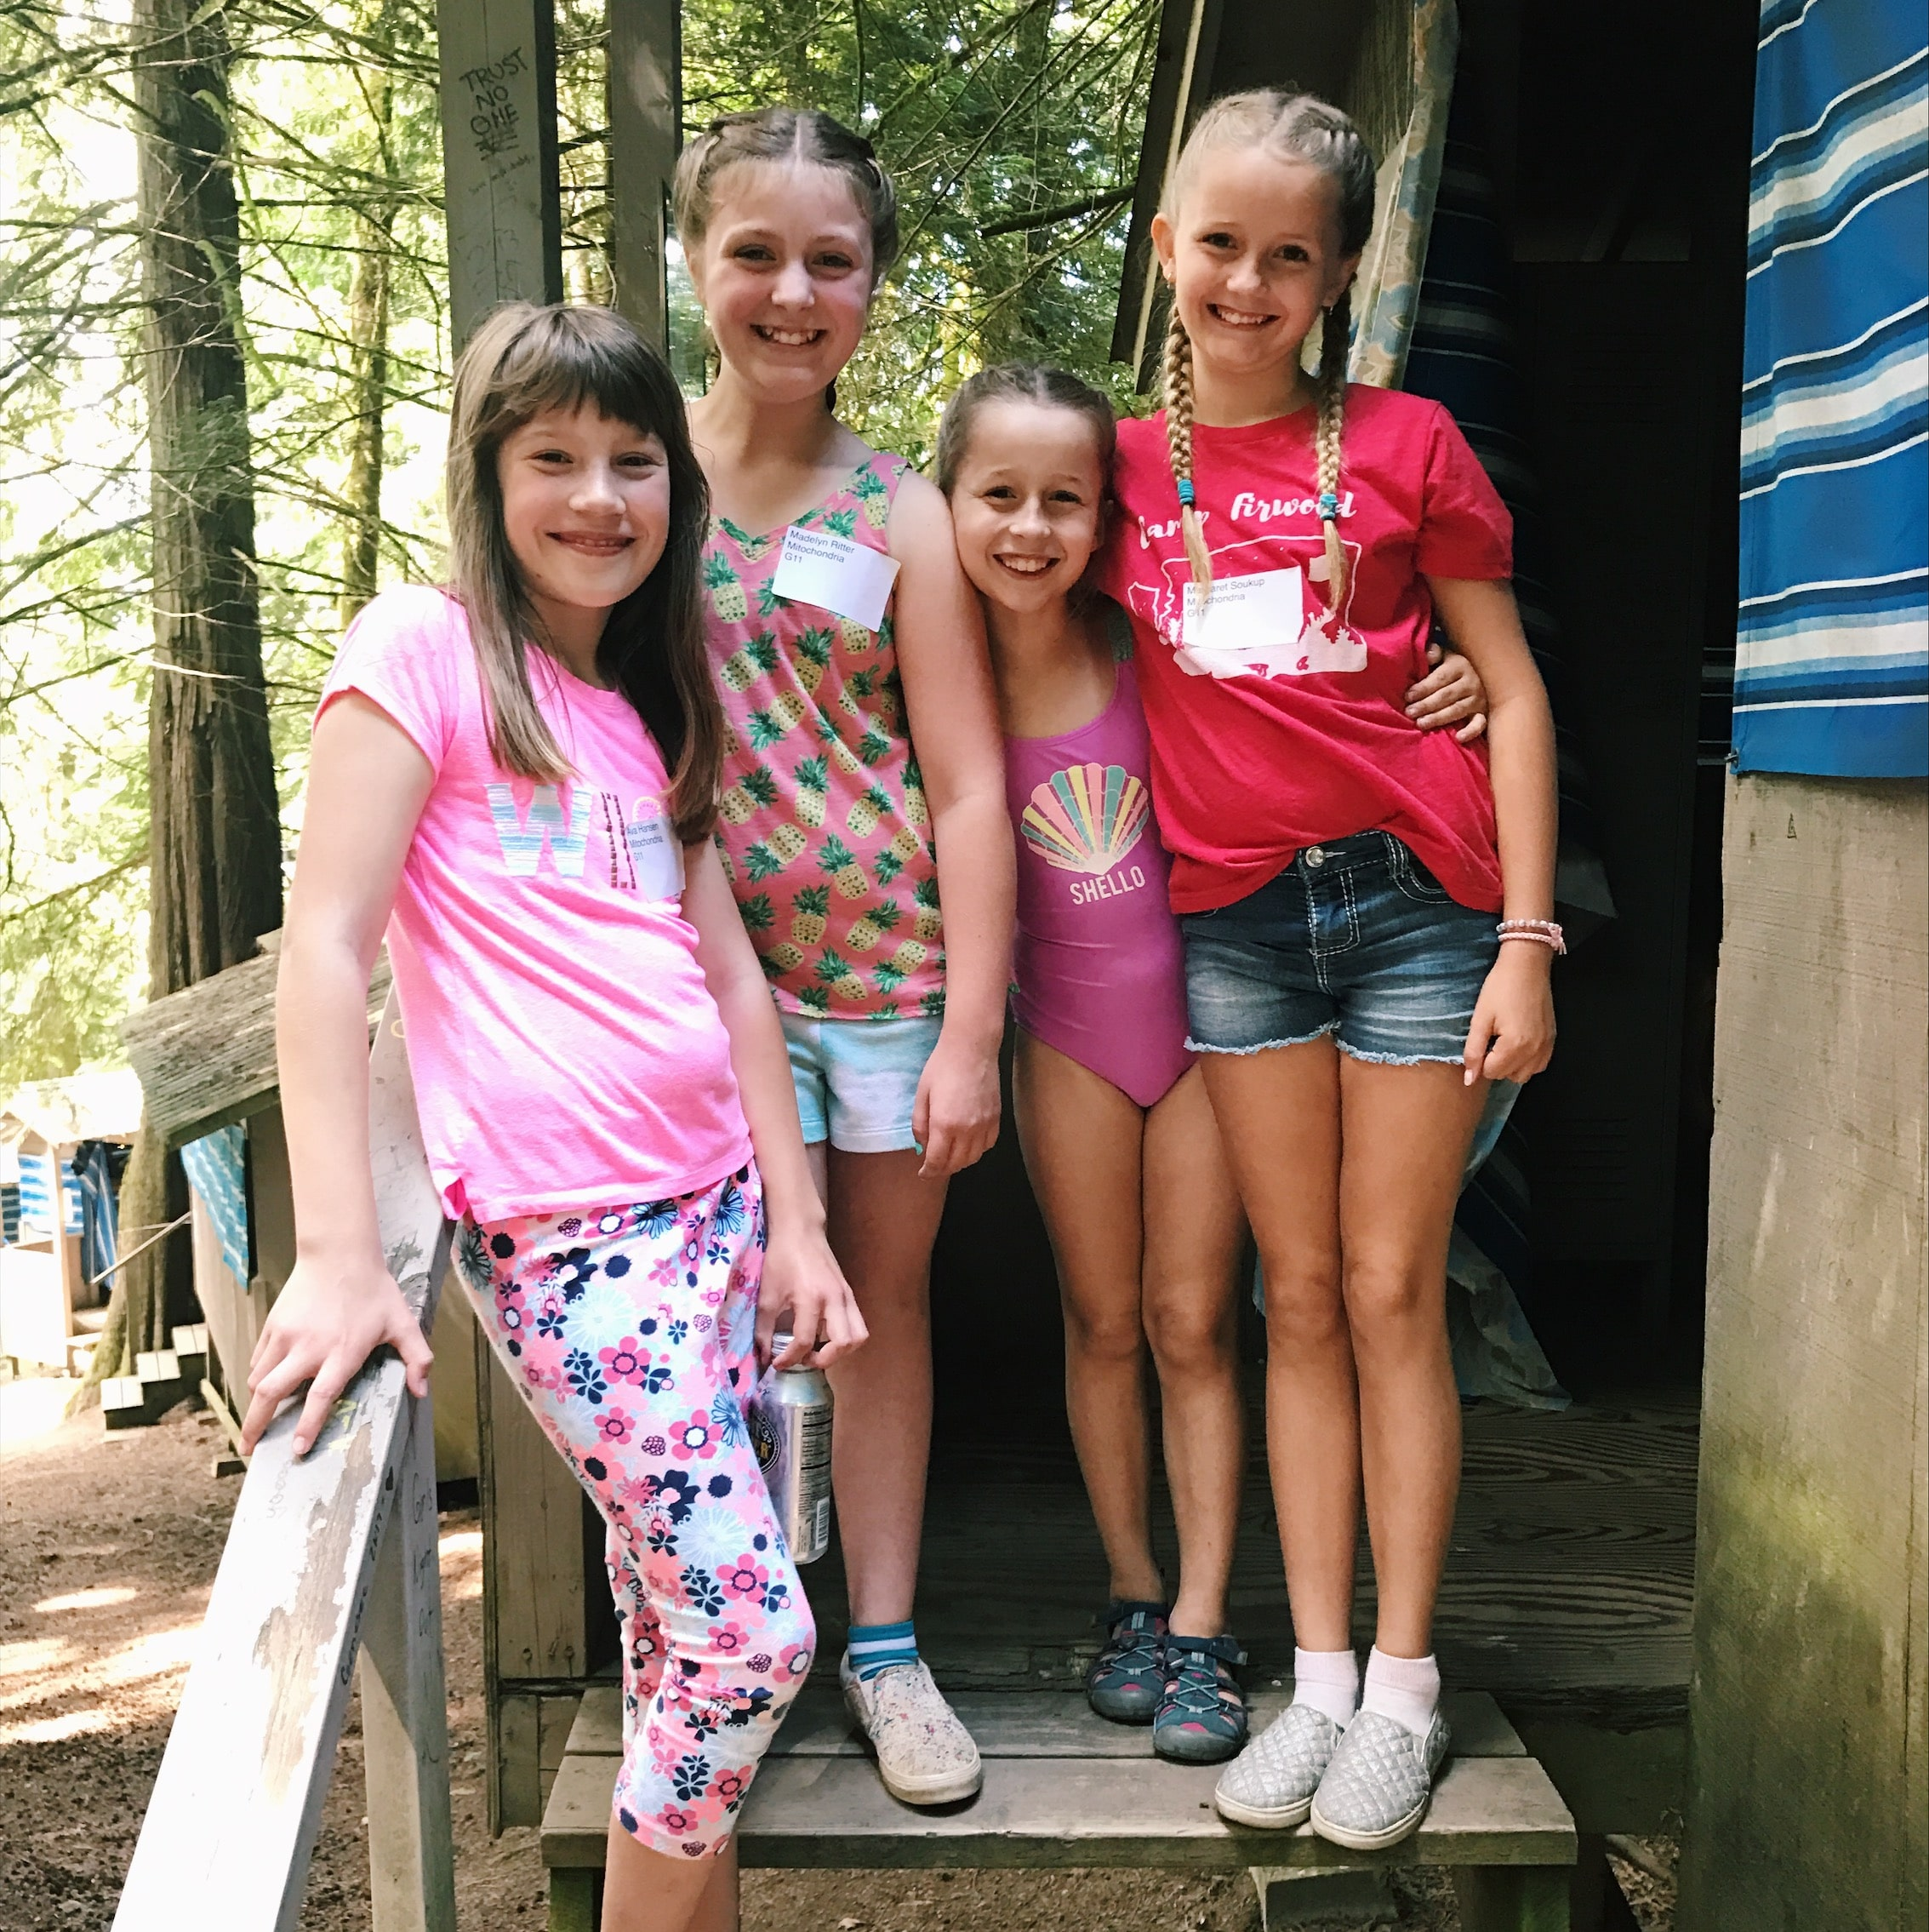 Summer camp is a great way for your kids to build valuable friendships